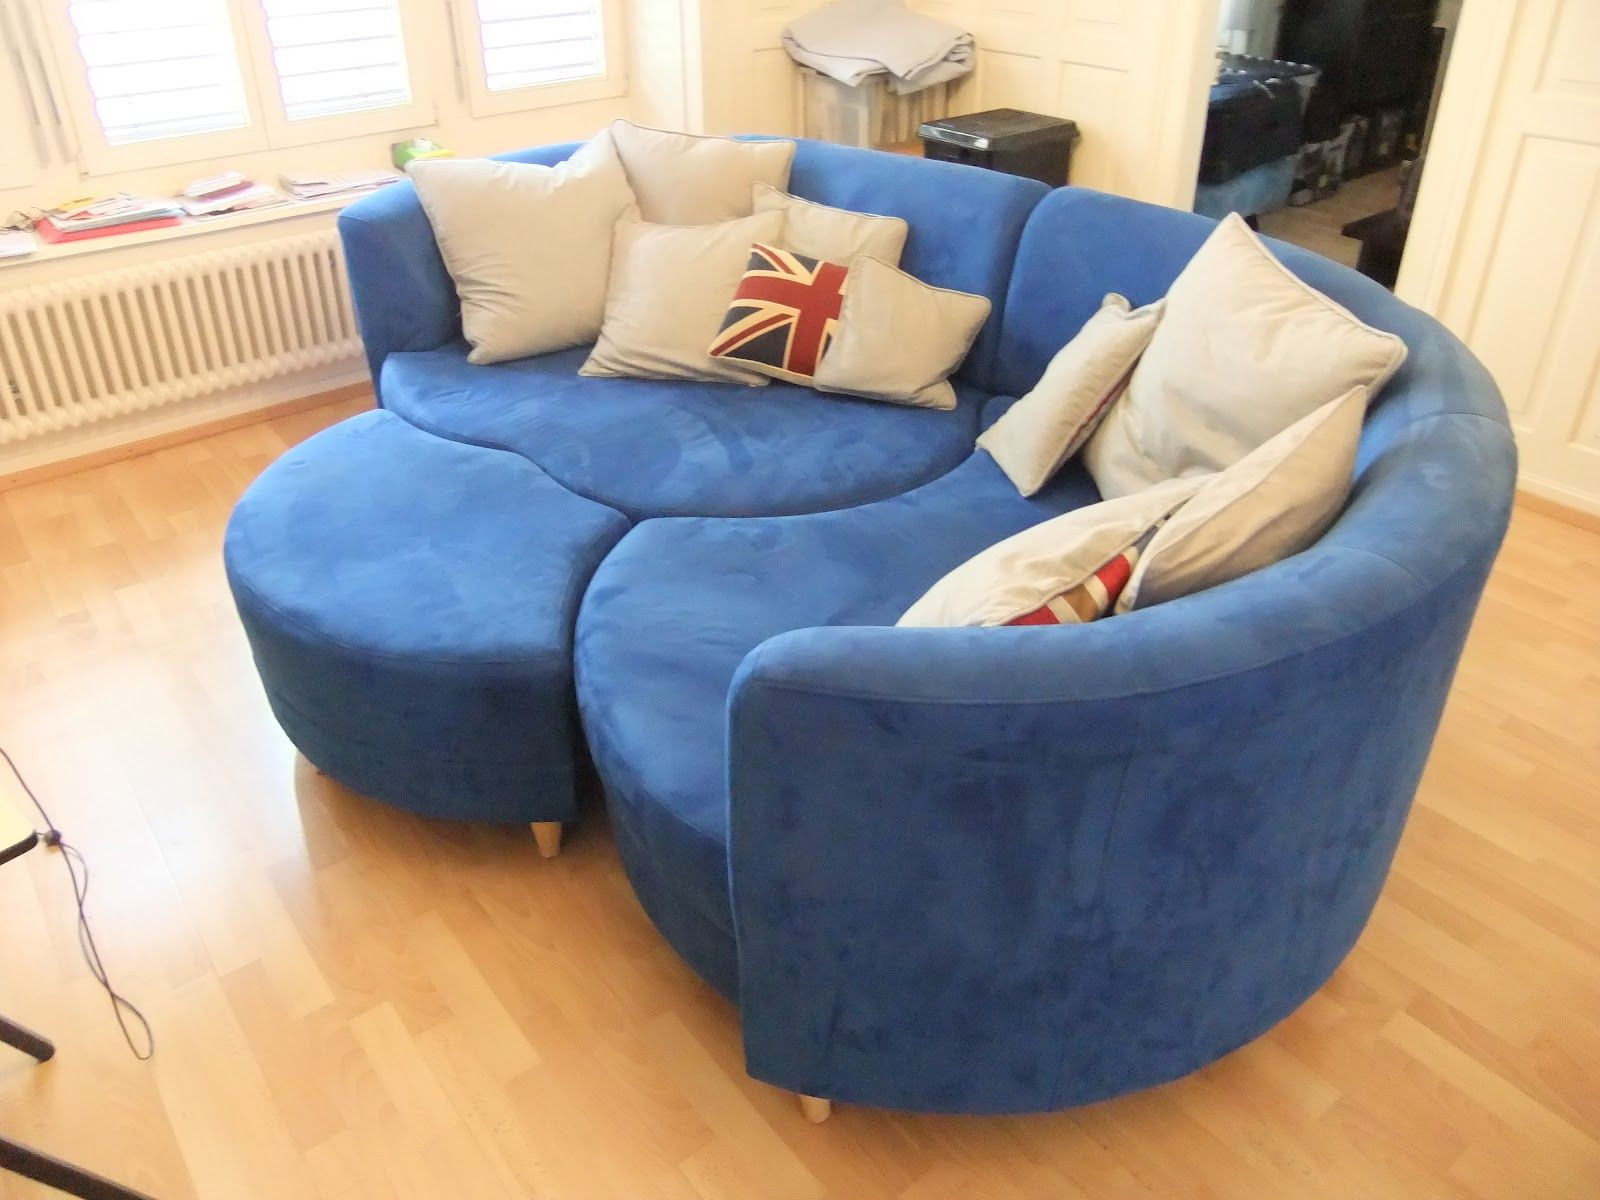 Soothing Blue Couch Living Room Furniture Pictures  Creative Design Round  Blue Couch Sectional Style With Stainless Steel Leg On Laminate Wooden  Floors Also  U Shaped Dark Blue Couch Leather U Shaped Sofa Sale Furniture  . Round Sofa Chair Living Room Furniture. Home Design Ideas